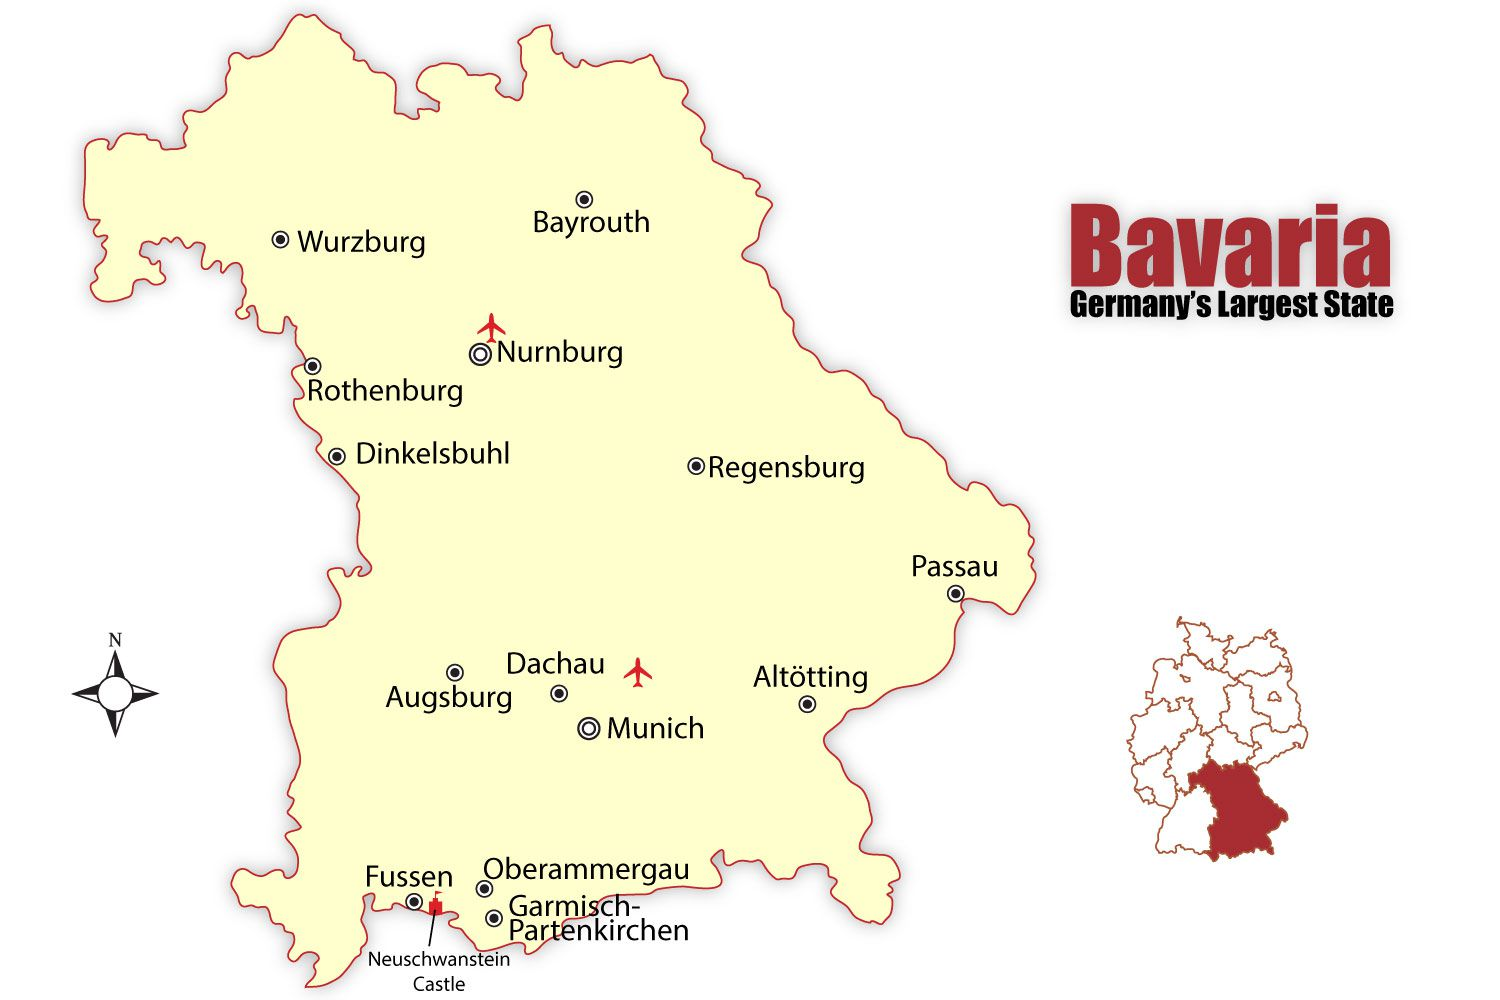 bavaria-map-56a3a27a3df78cf7727e58c6